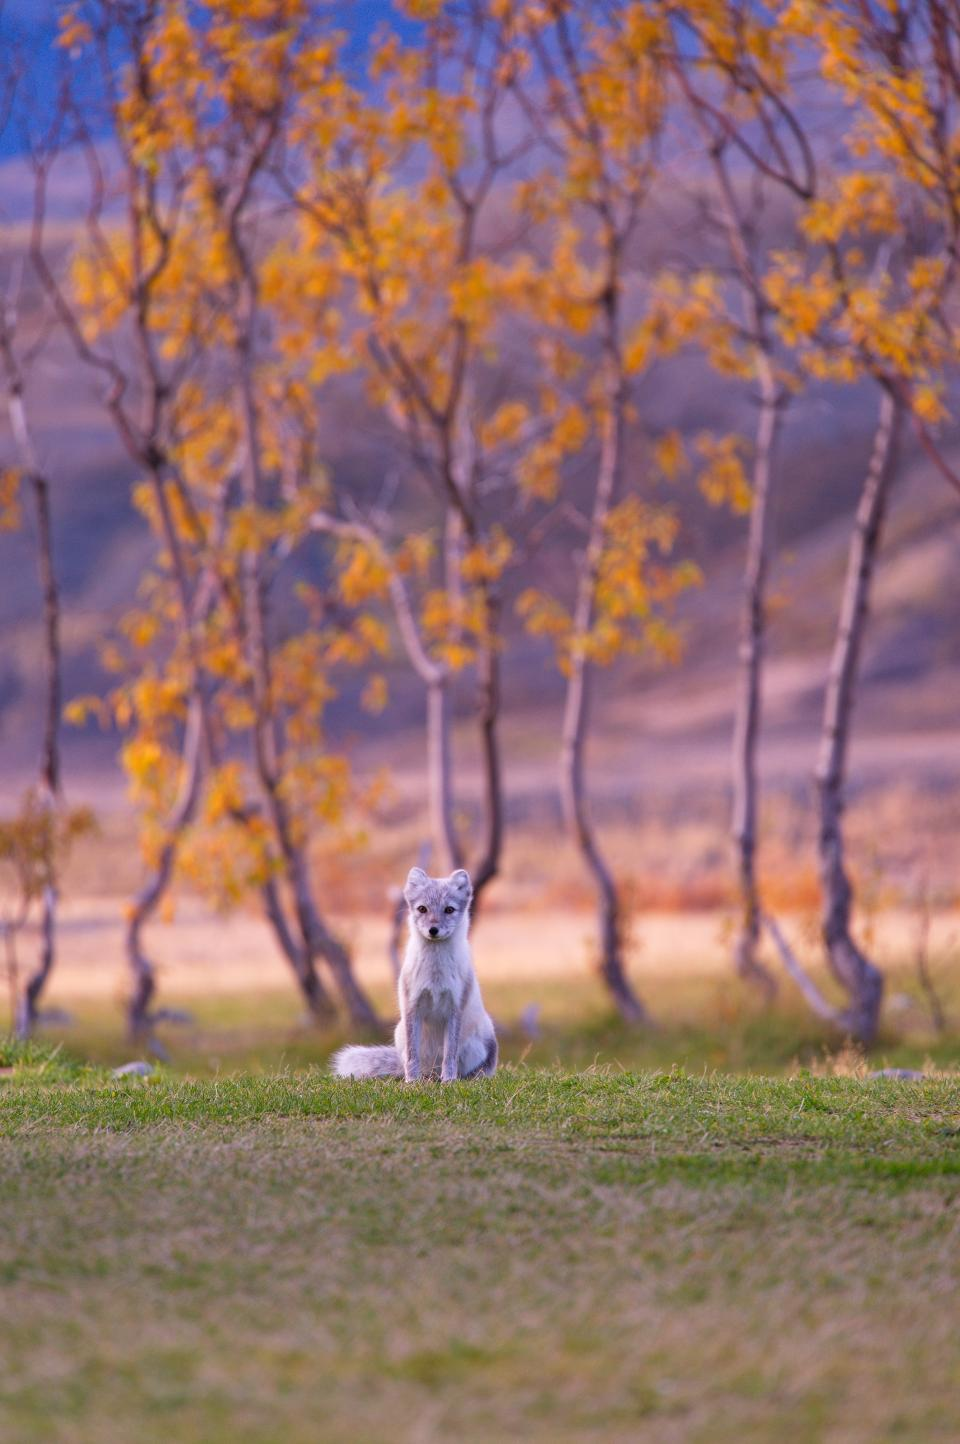 dog, puppy, animal, pet, playground, grass, autumn, fall, trees, nature, mountain